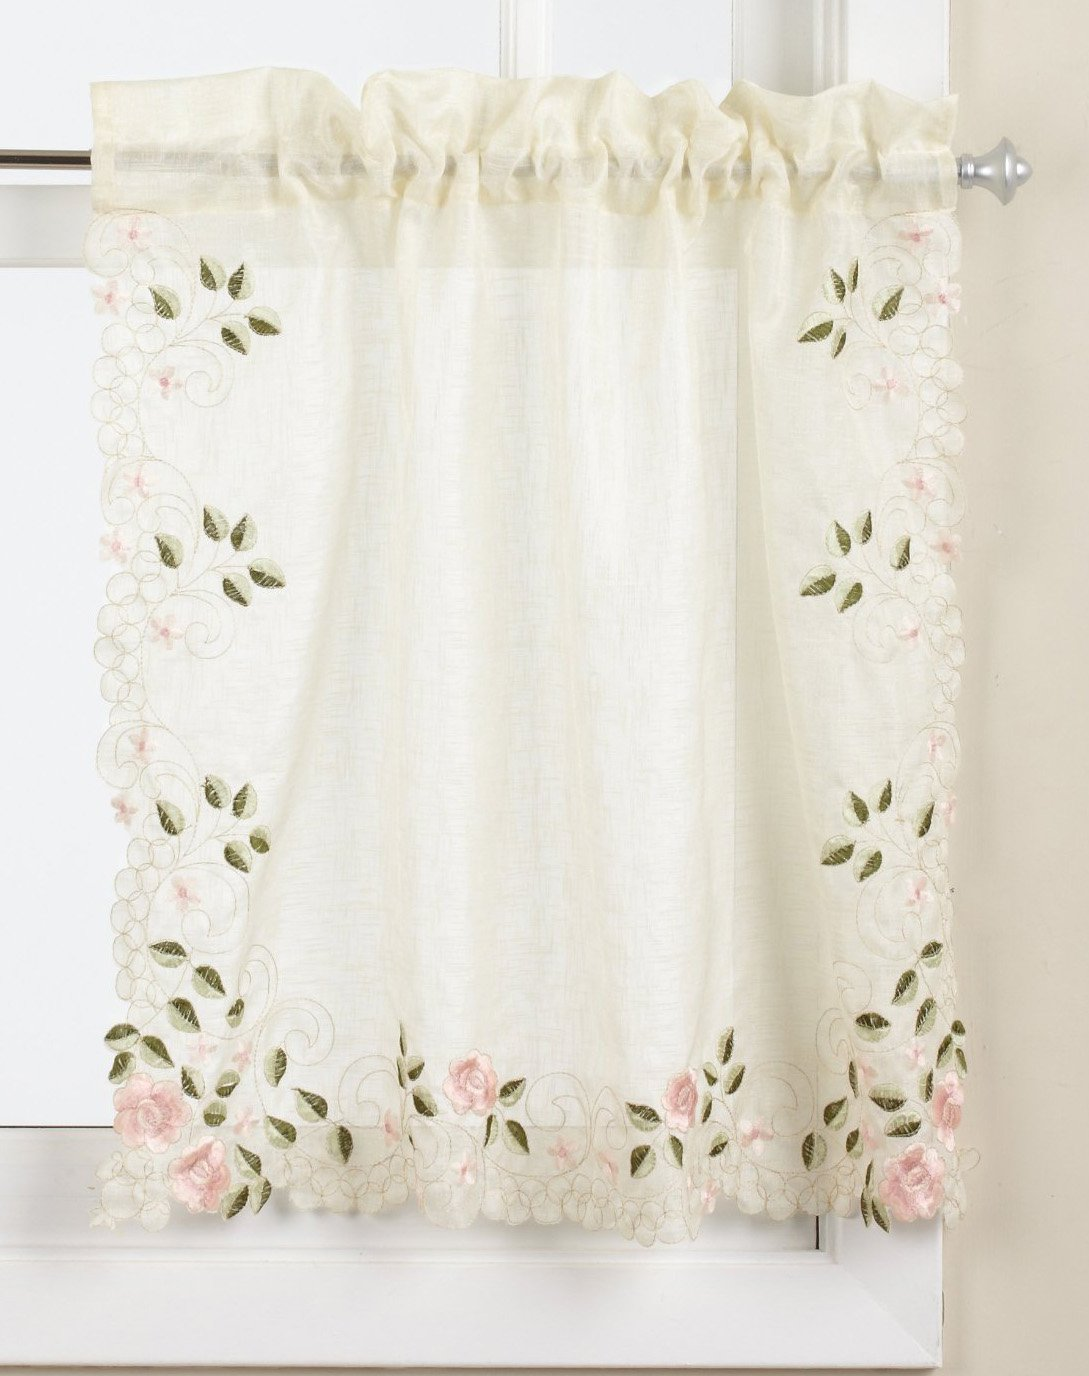 Lorraine Home Fashions Rosemary Tier Curtain Pair, 58 by 36-Inch, Rose